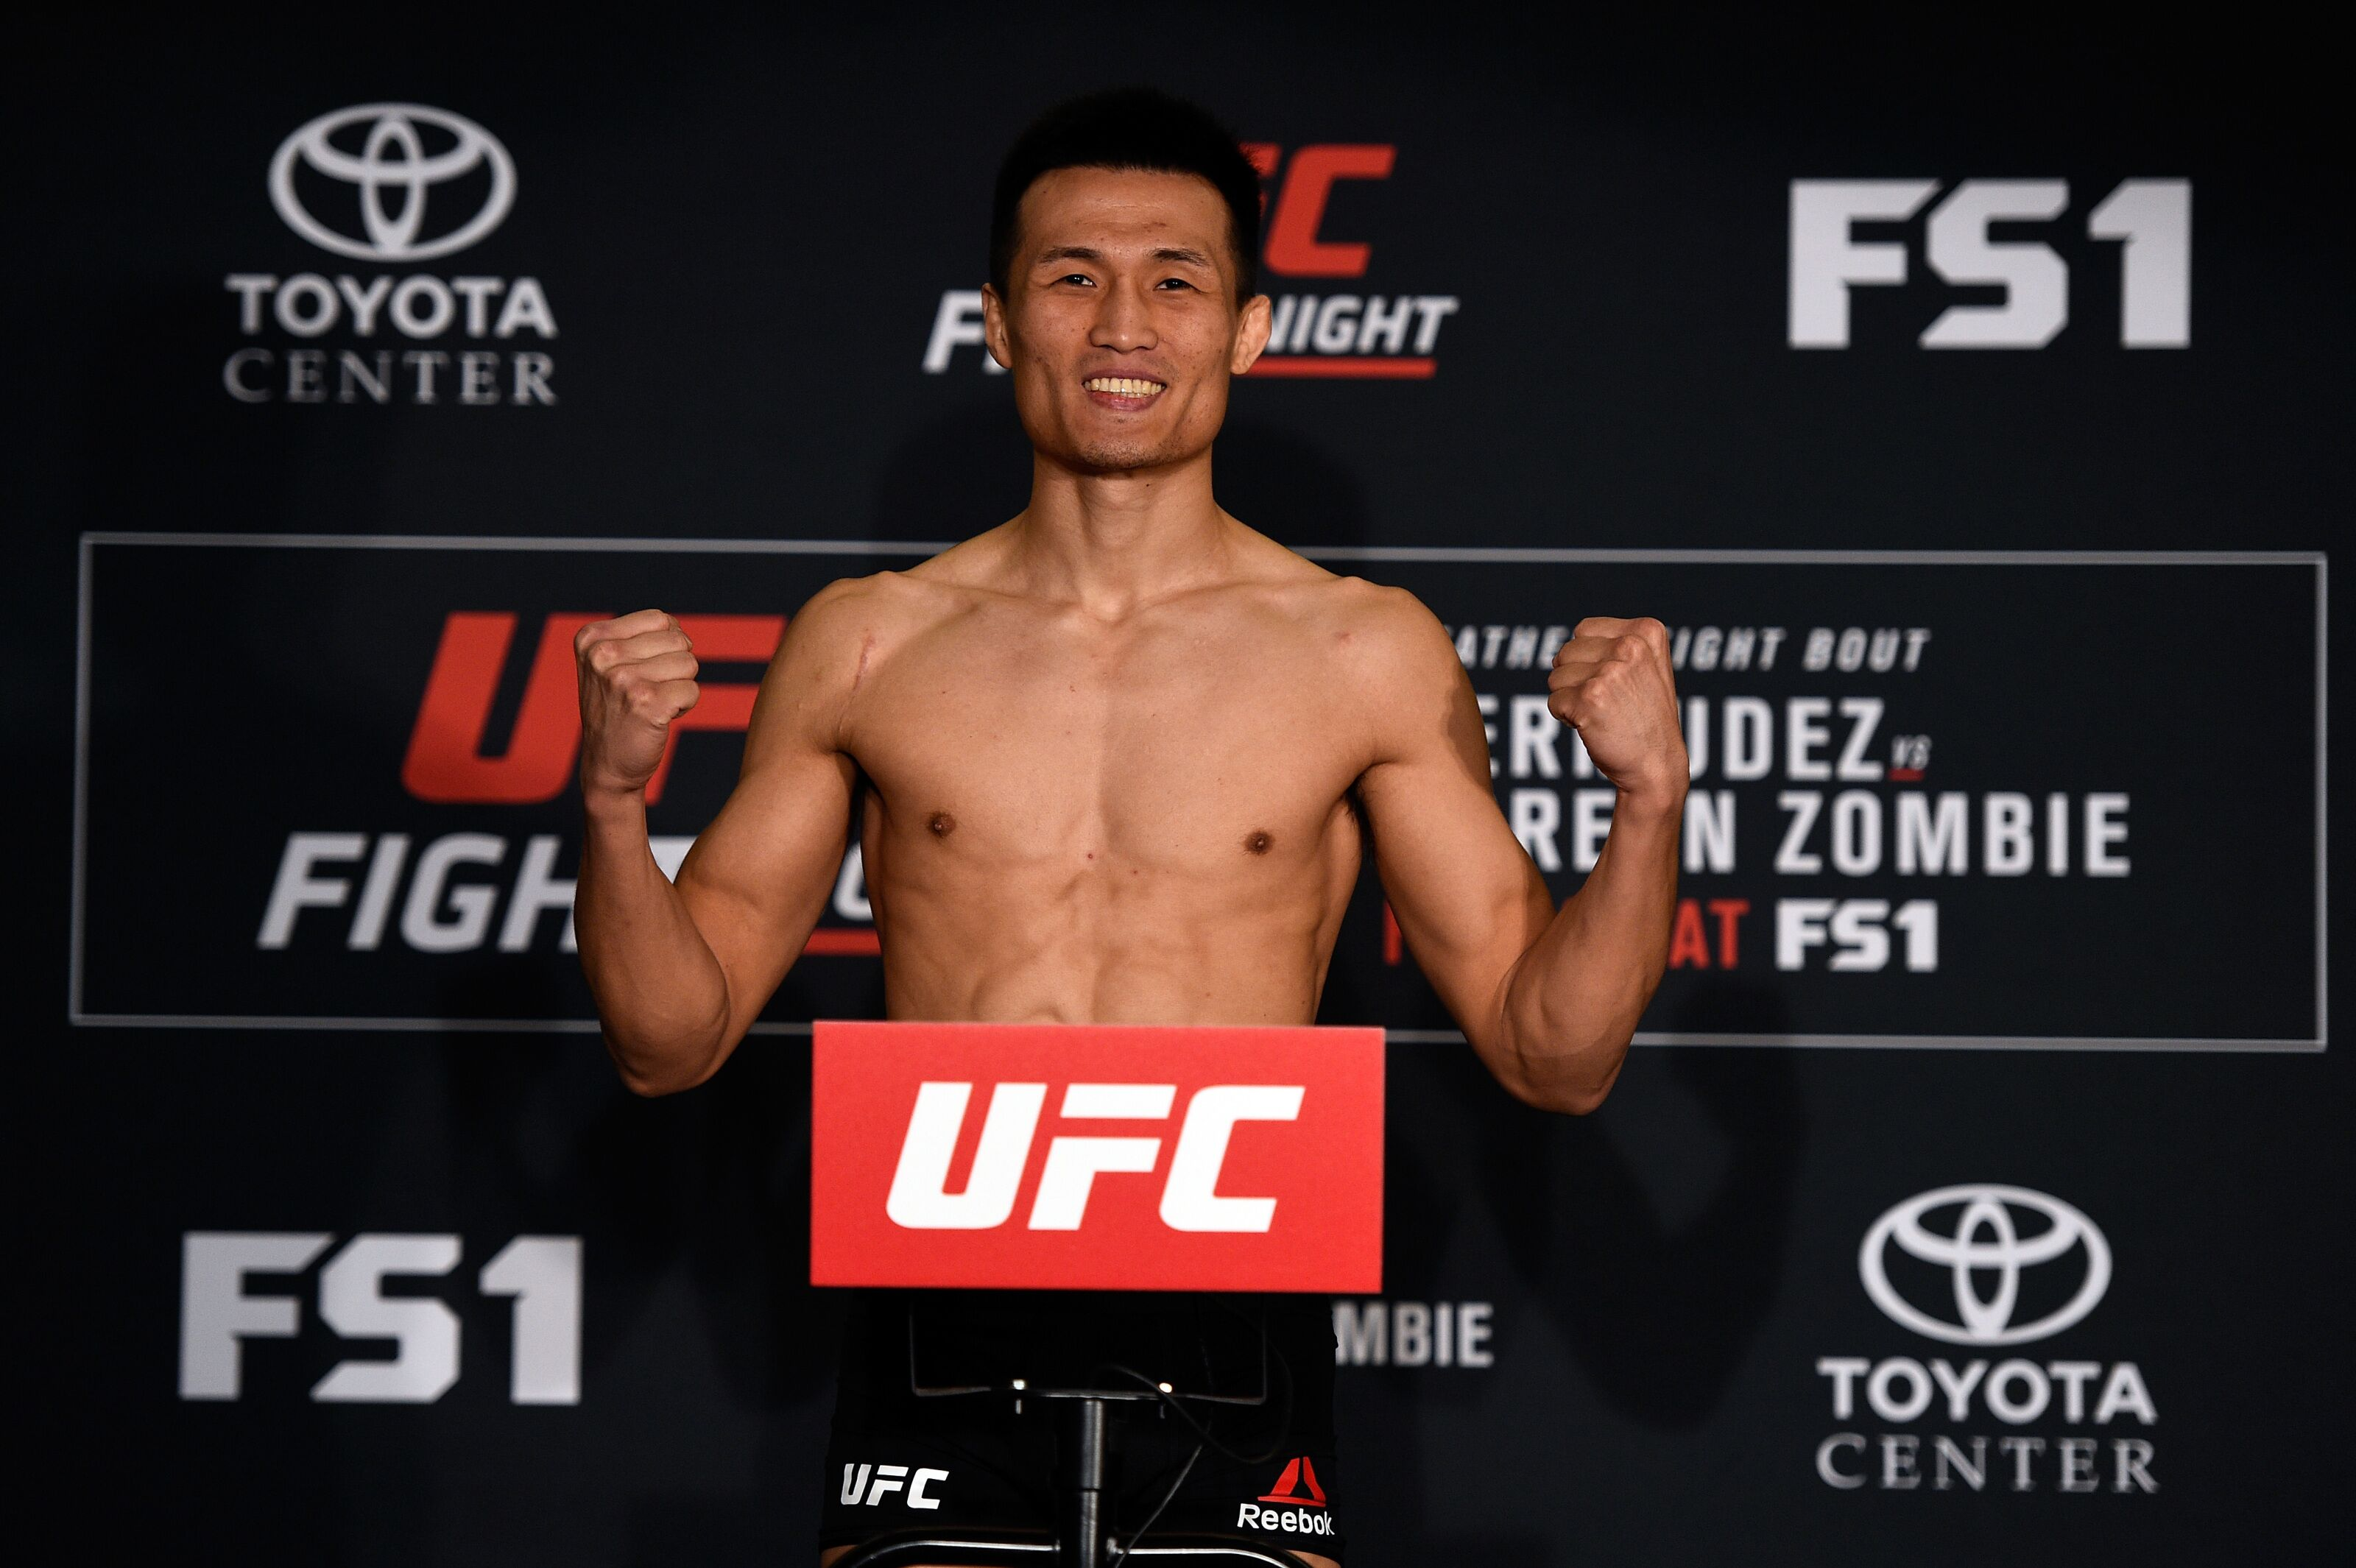 HOUSTON, TEXAS - FEBRUARY 03: Chan Sung Jung of South Korea poses on the scale during the UFC Fight Night weigh-in at the Sheraton North Houston at George Bush Intercontinental on February 3, 2017 in Houston, Texas. (Photo by Jeff Bottari/Zuffa LLC/Zuffa LLC via Getty Images)